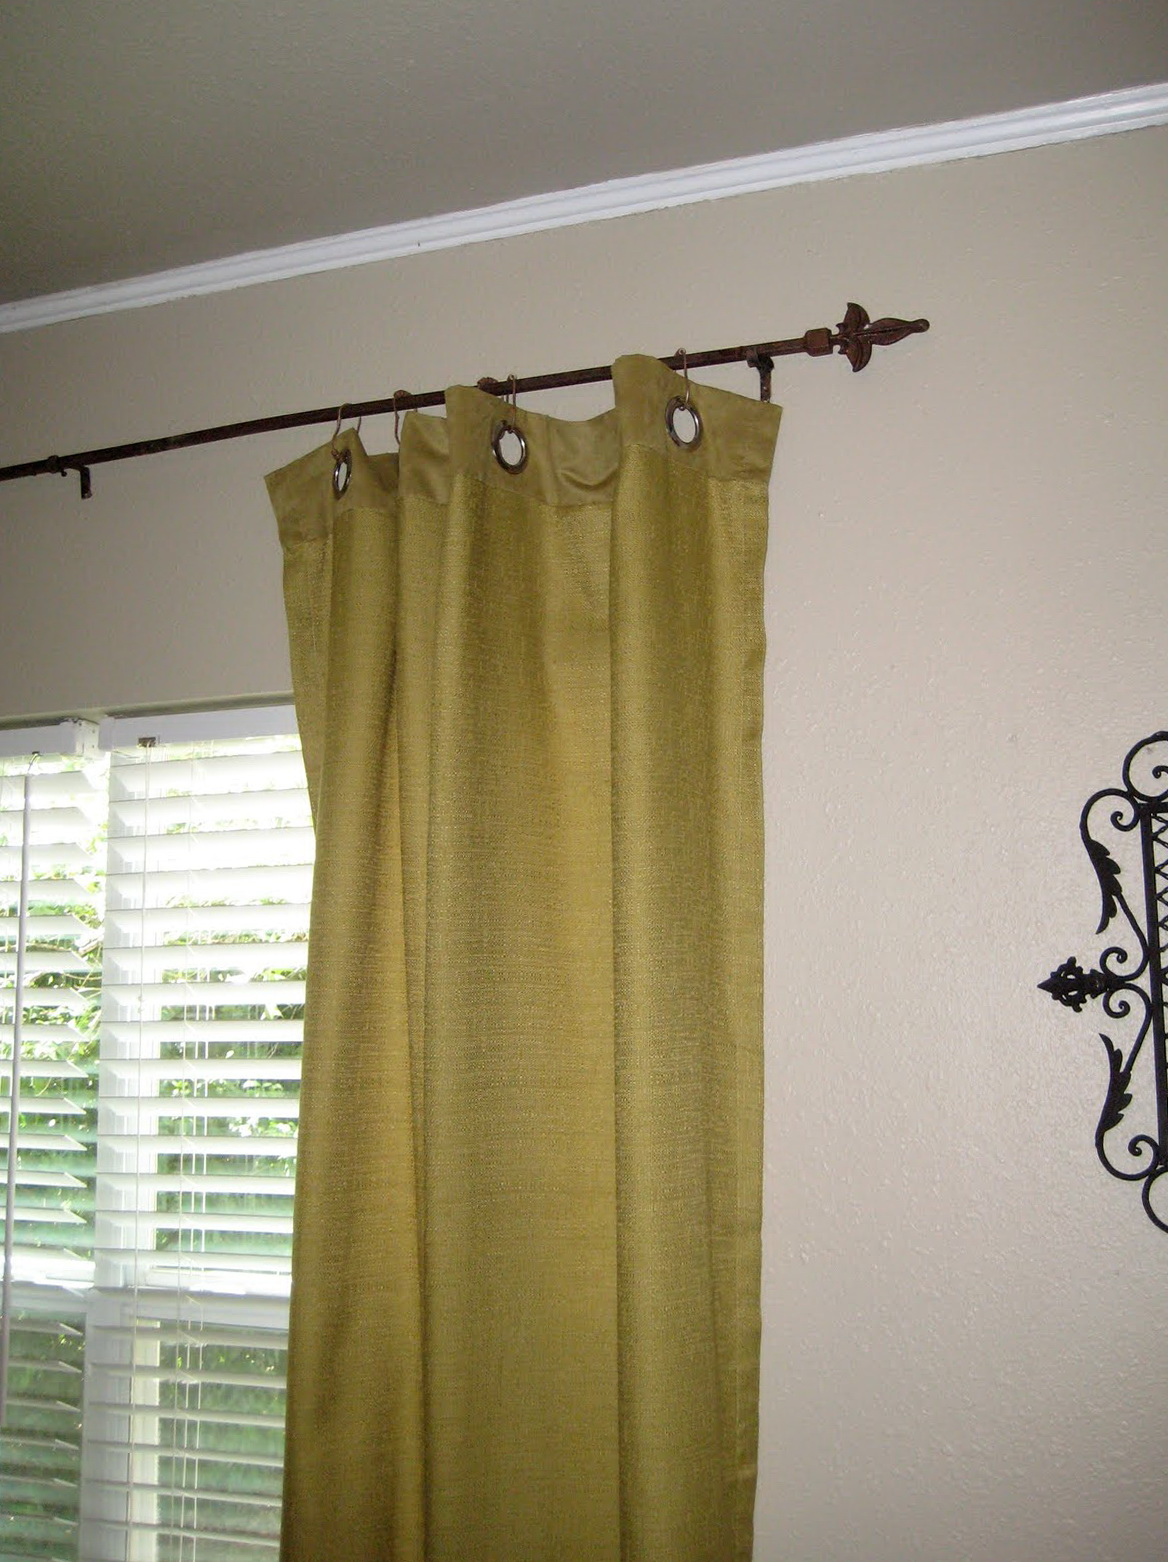 Small curtain